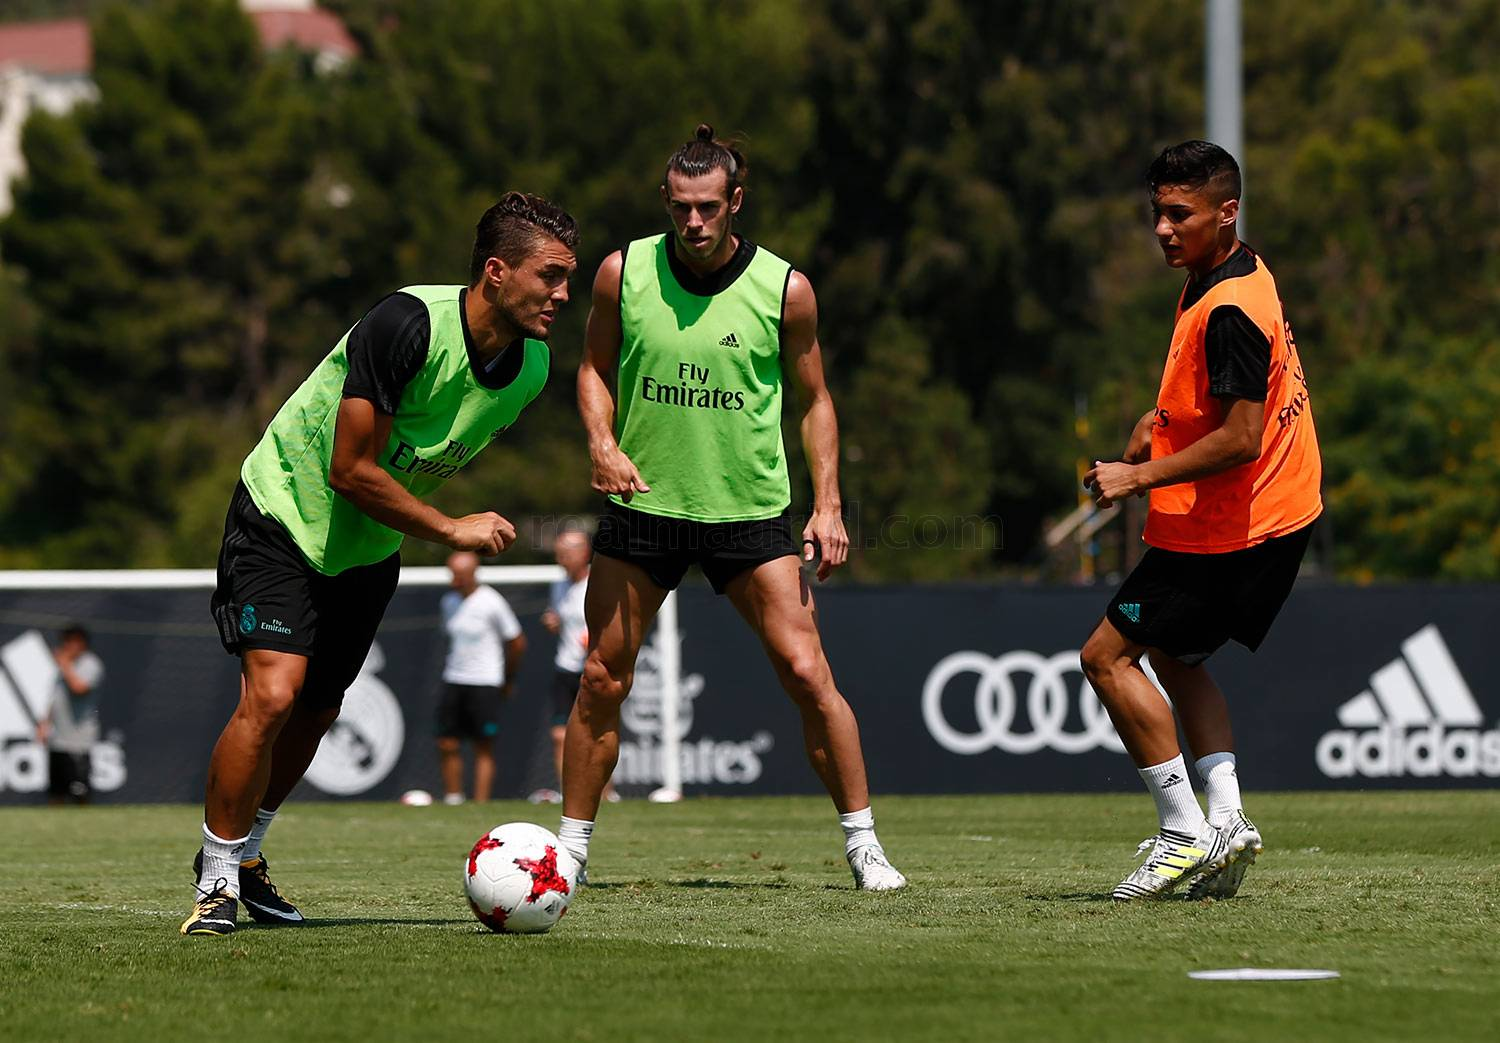 Real Madrid - Entrenamiento del Real Madrid en UCLA - 17-07-2017